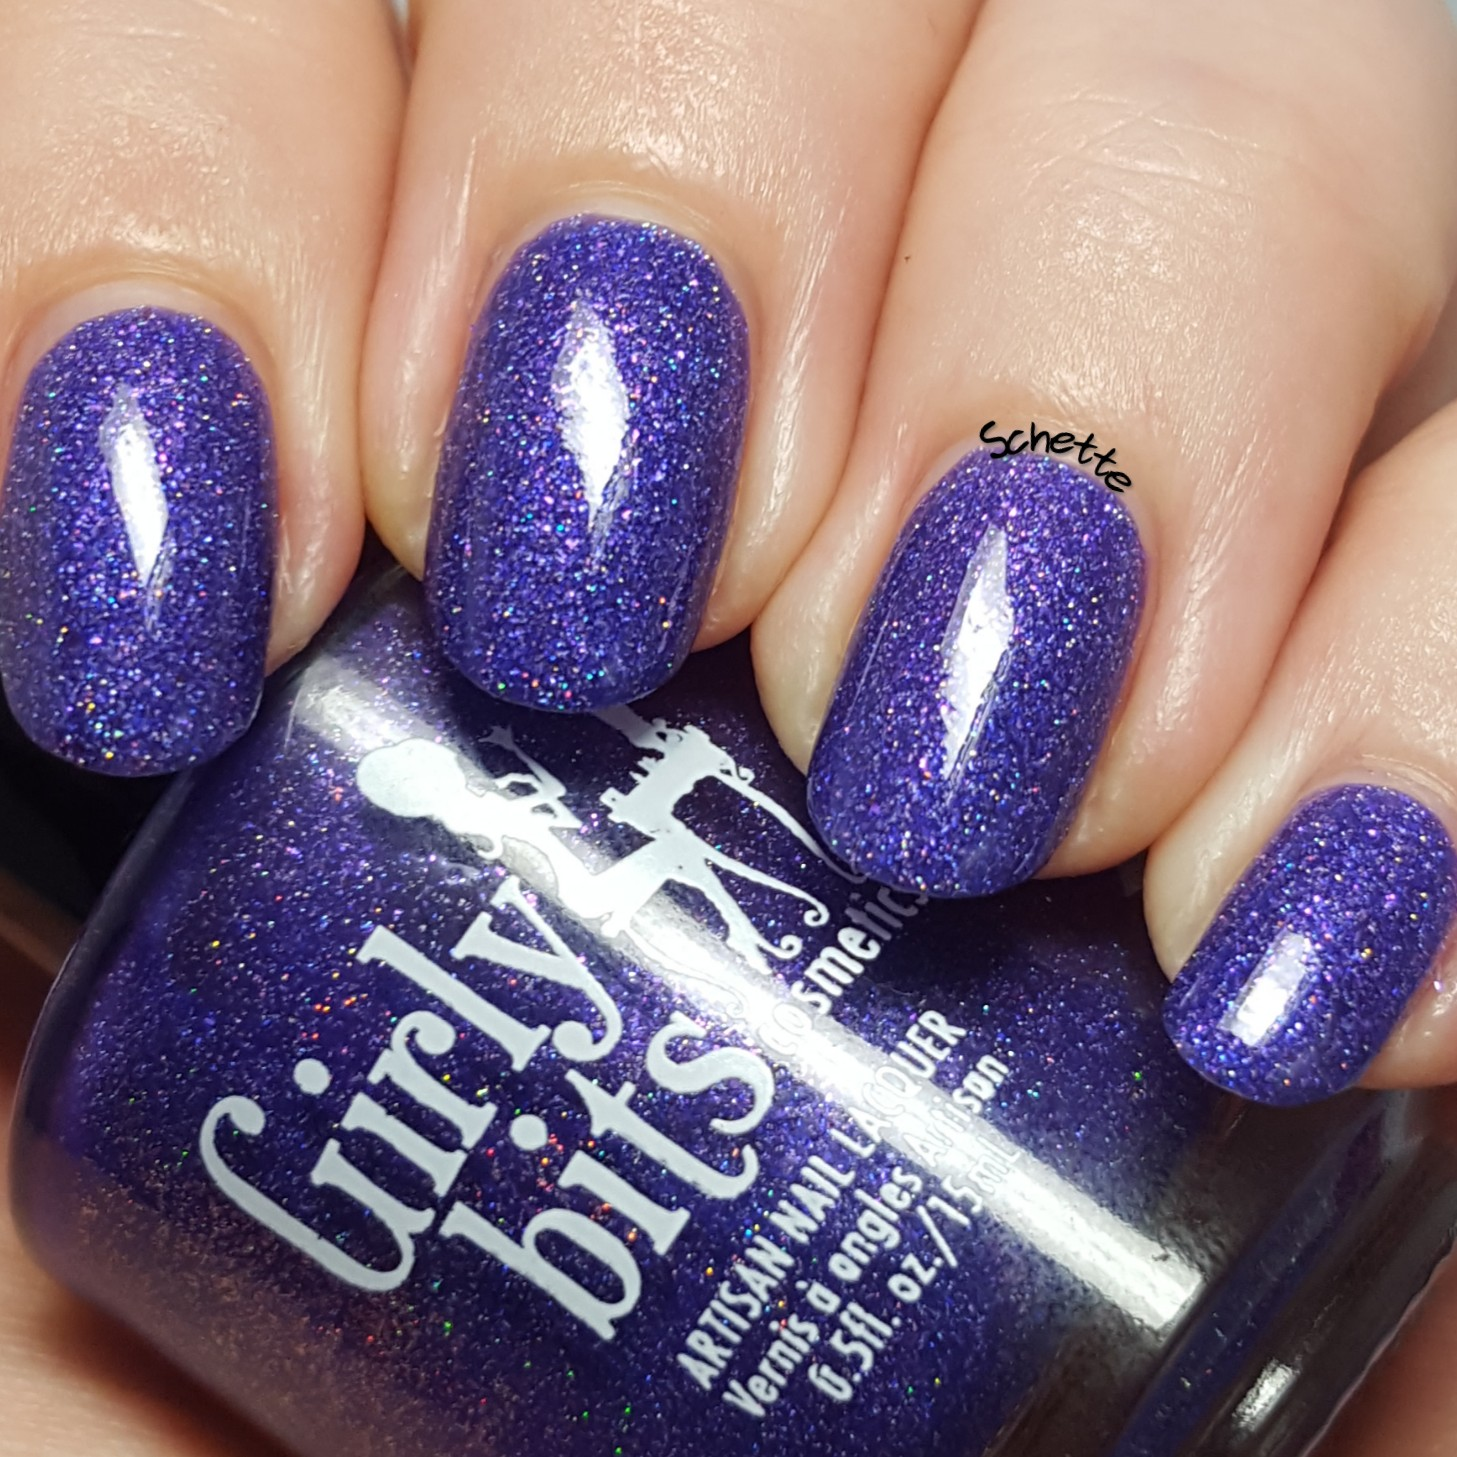 Girly Bits - No such thing as purple problem